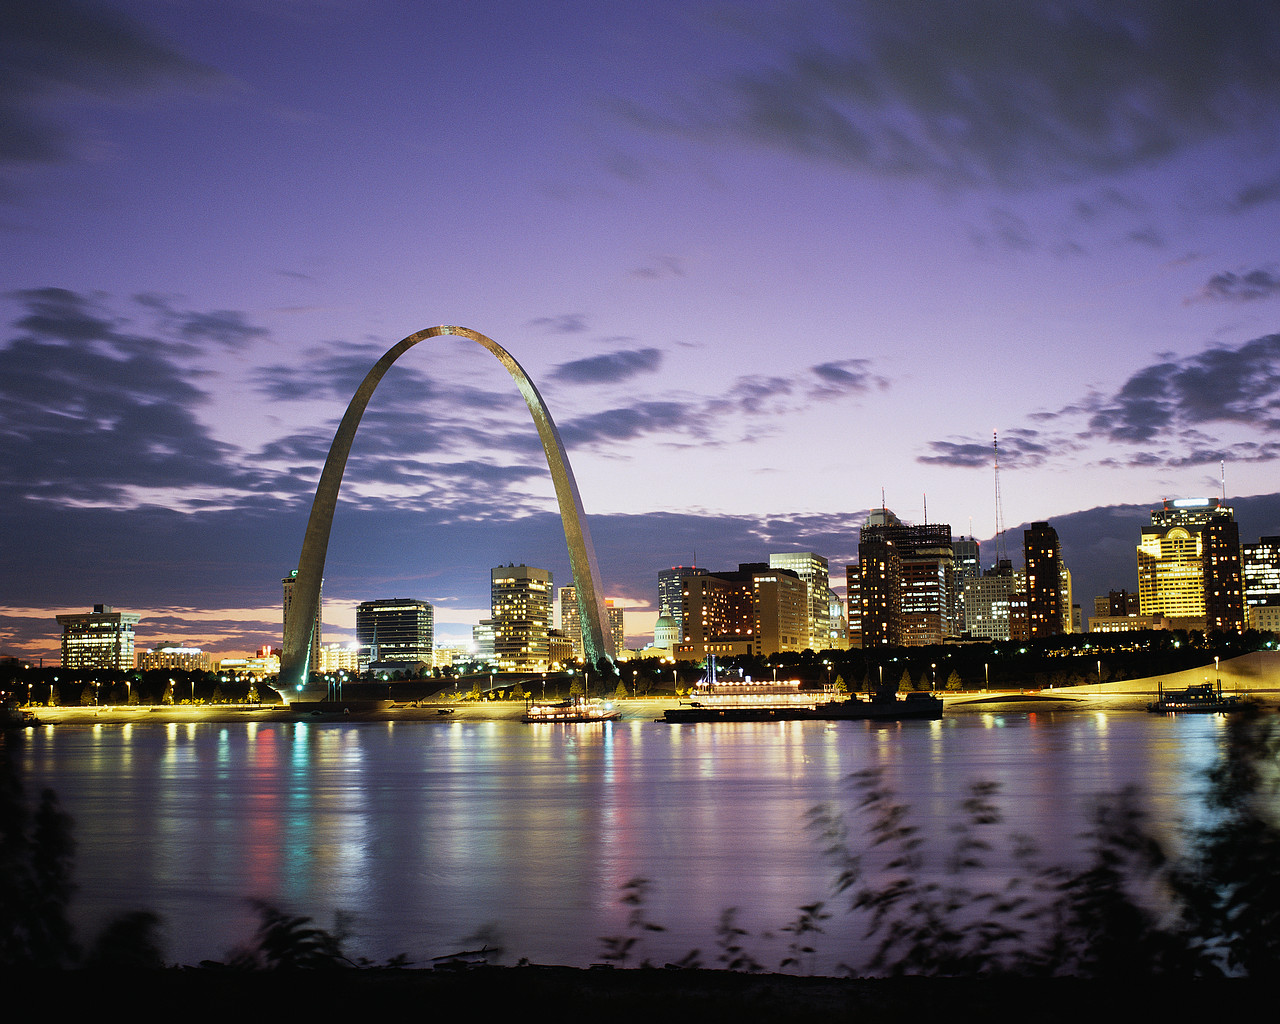 St. Louis at Sunset